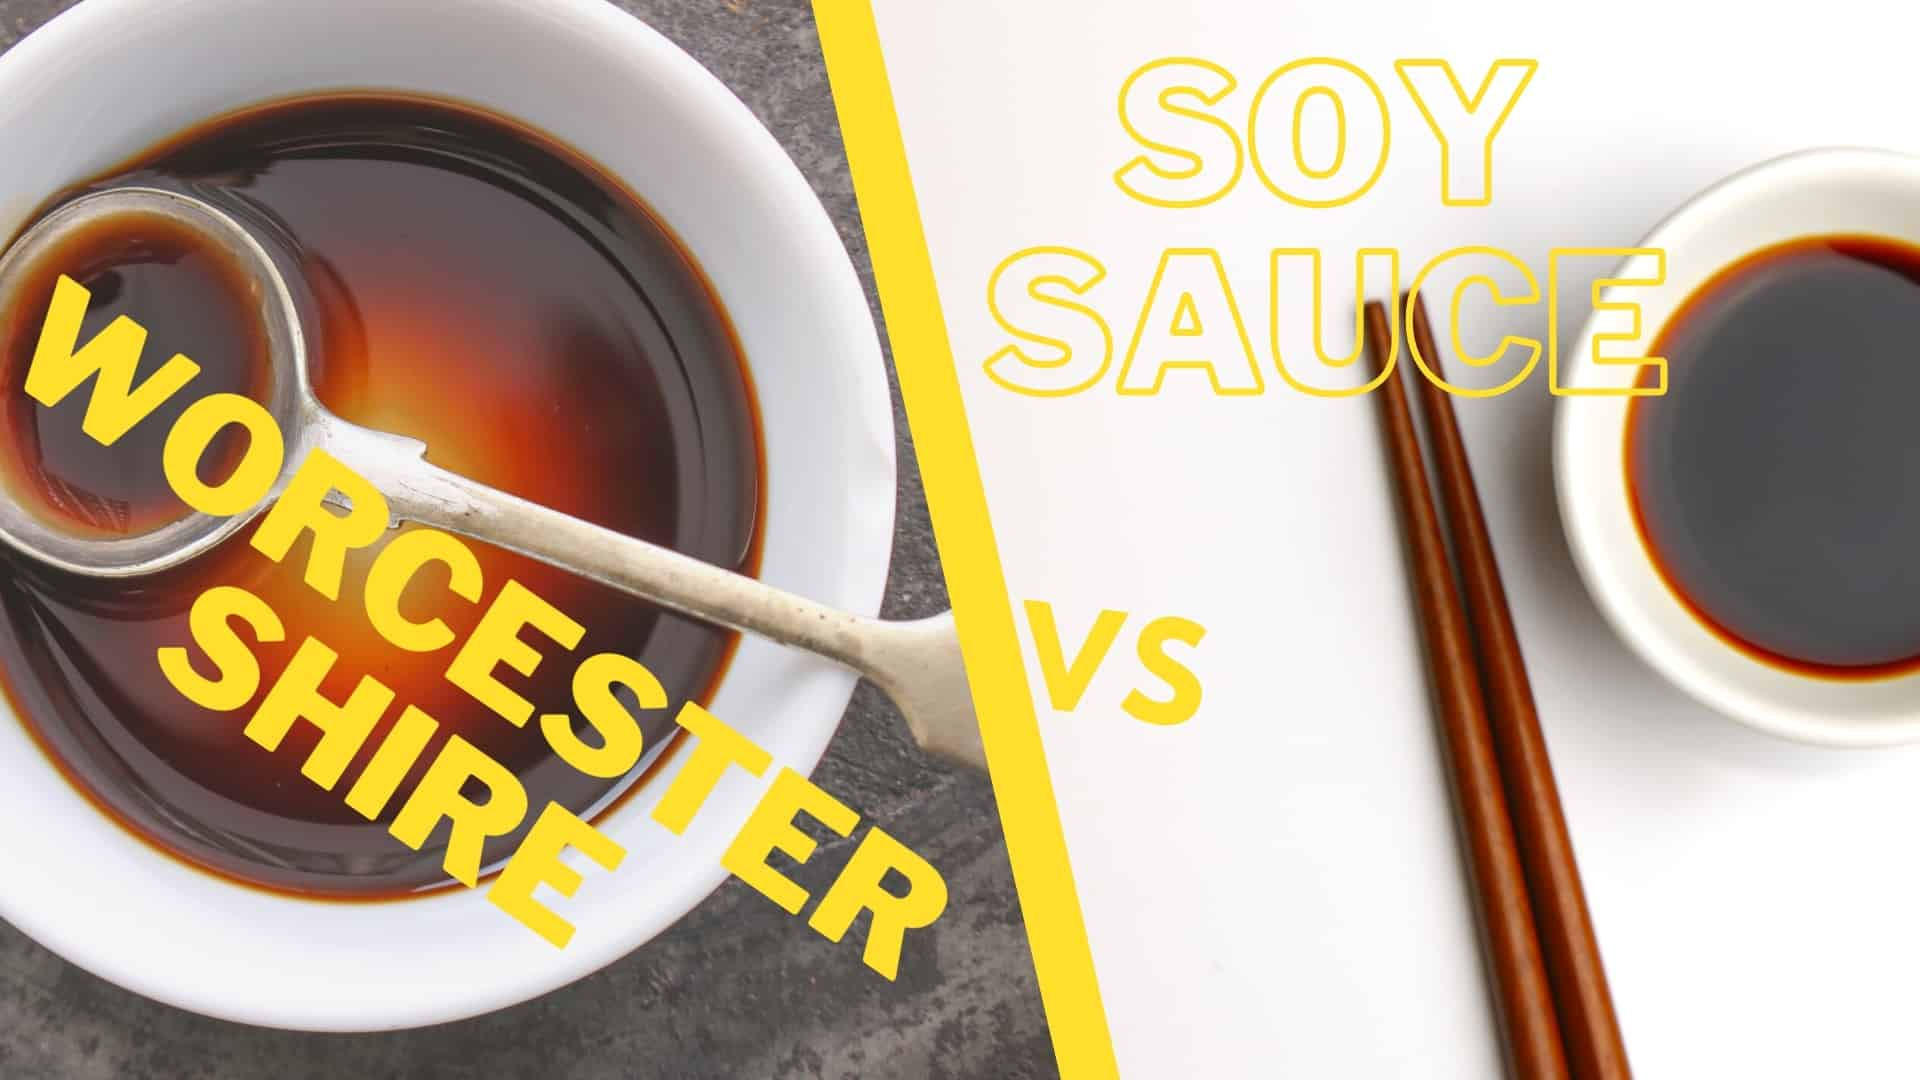 Worcestershire vs soy sauce